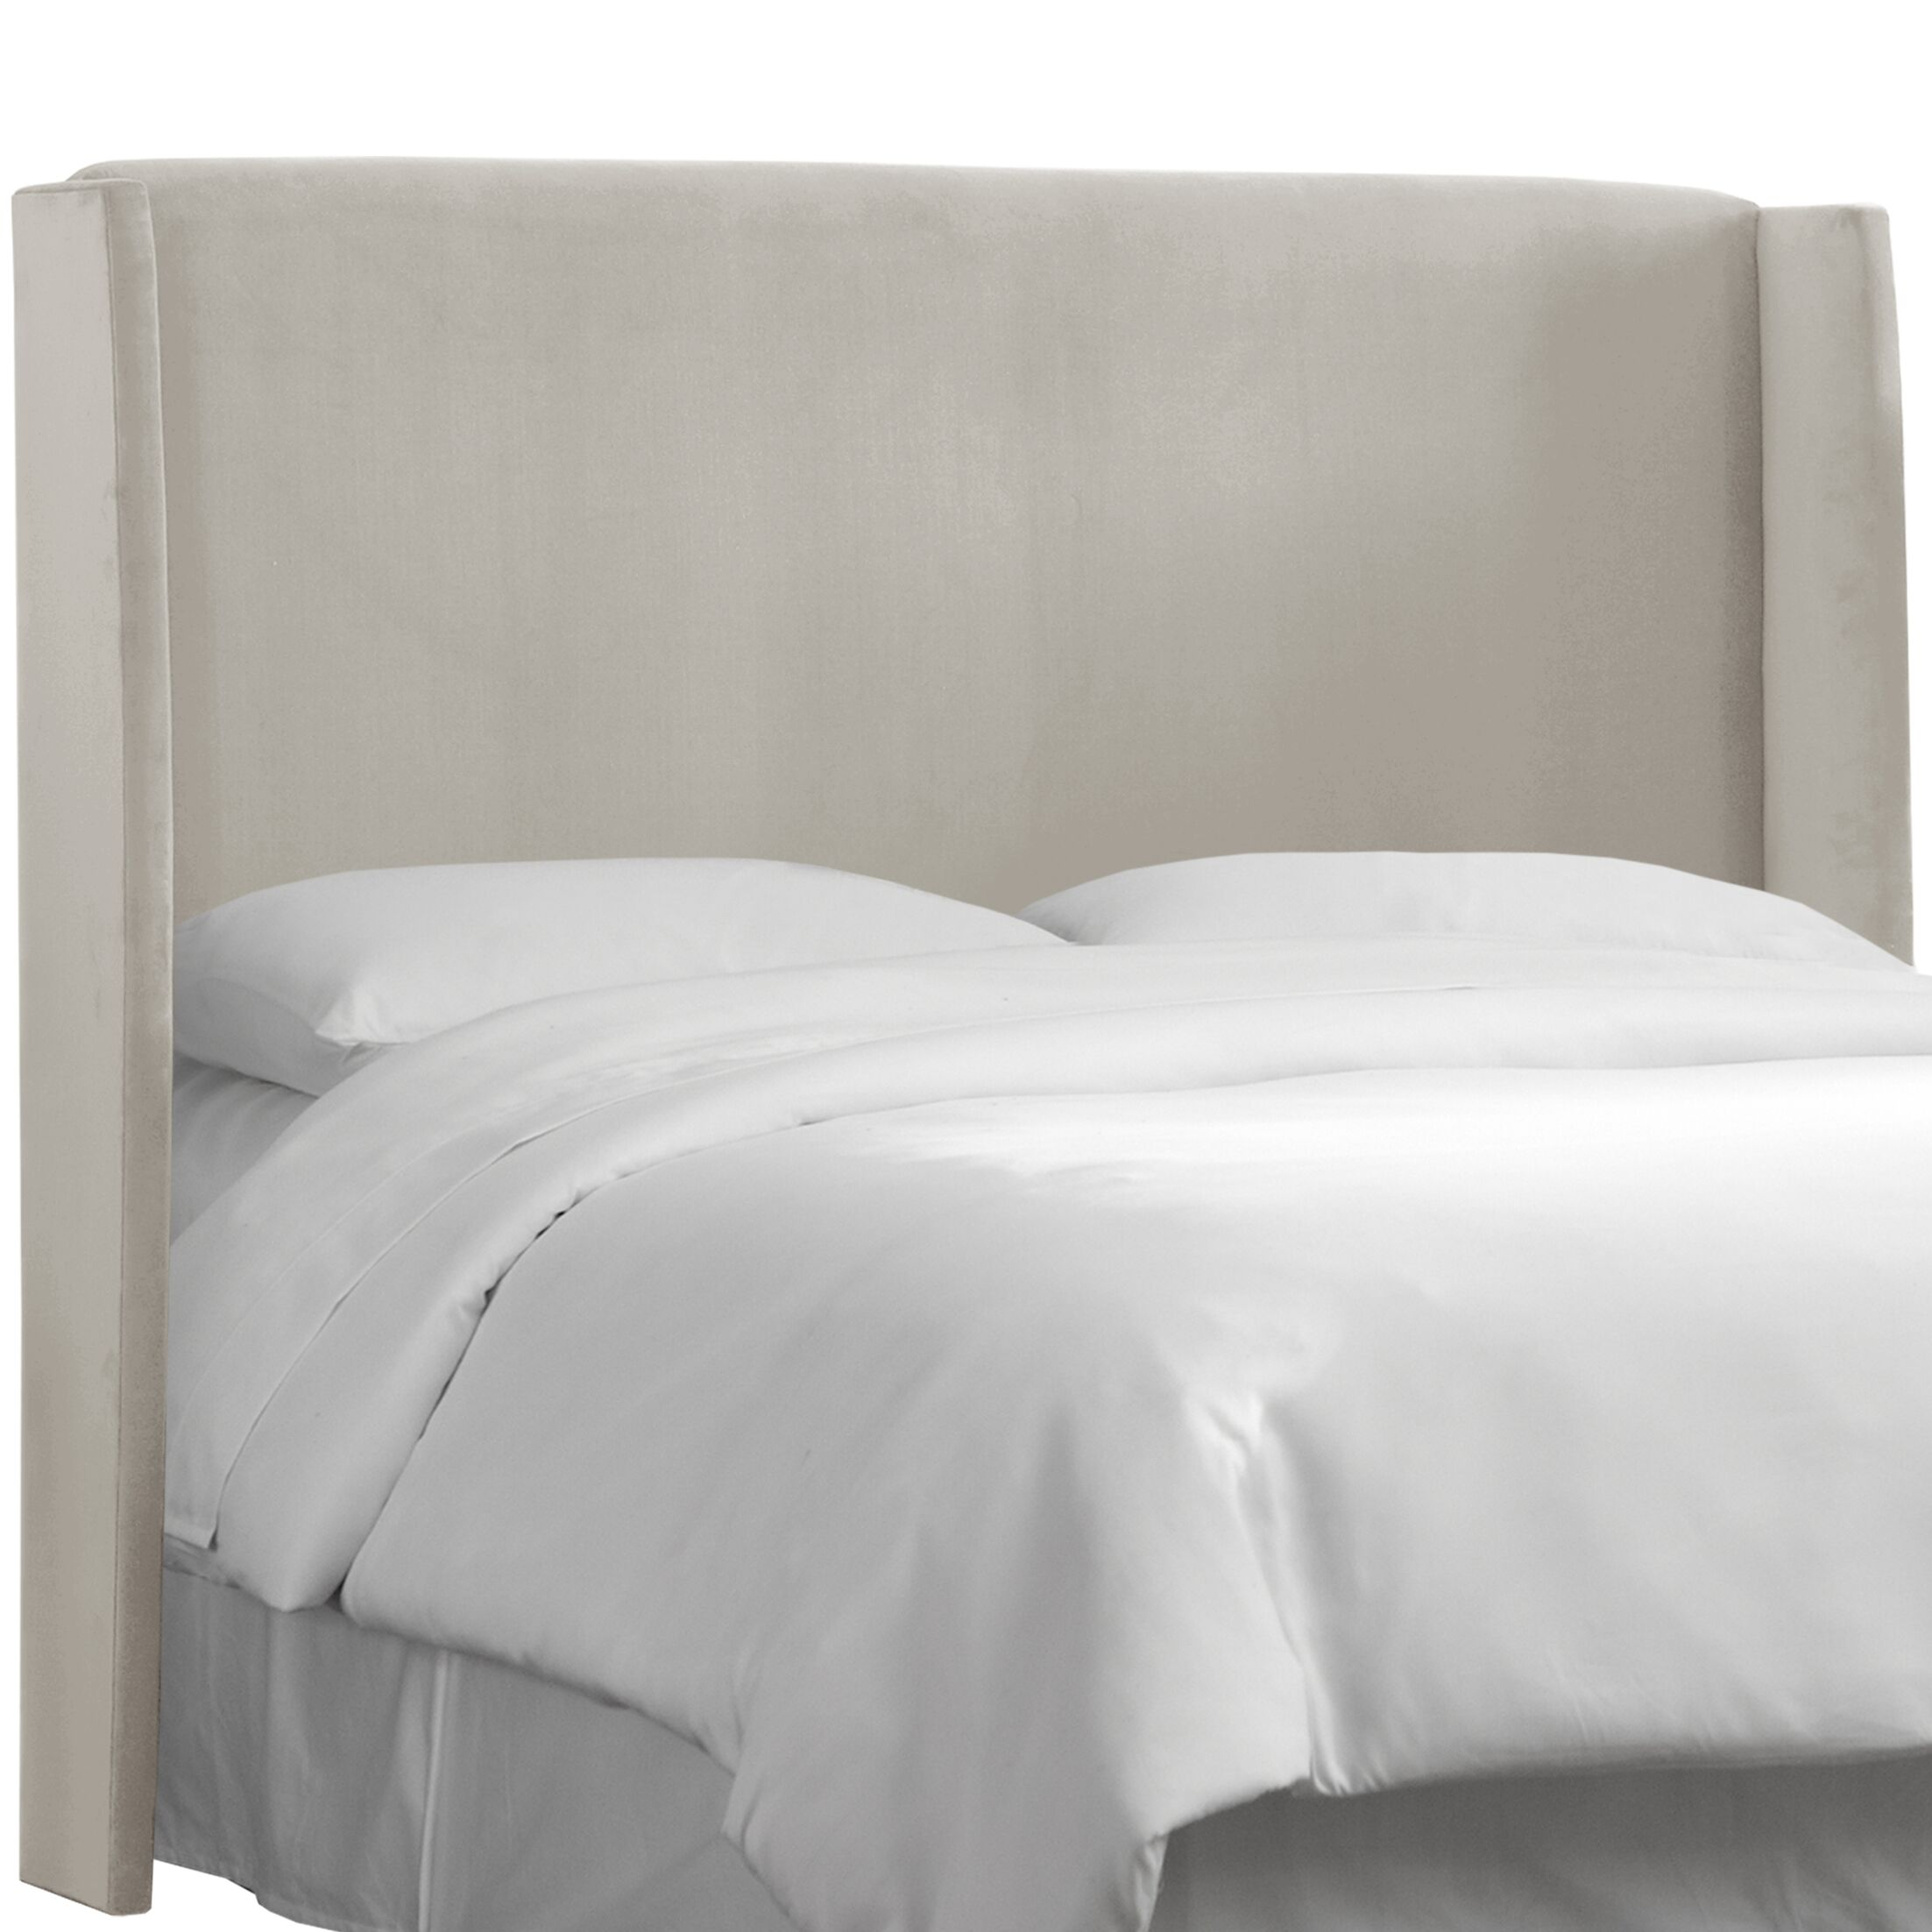 Wingback Upholstered Headboard Size: California King, Color: Light Grey